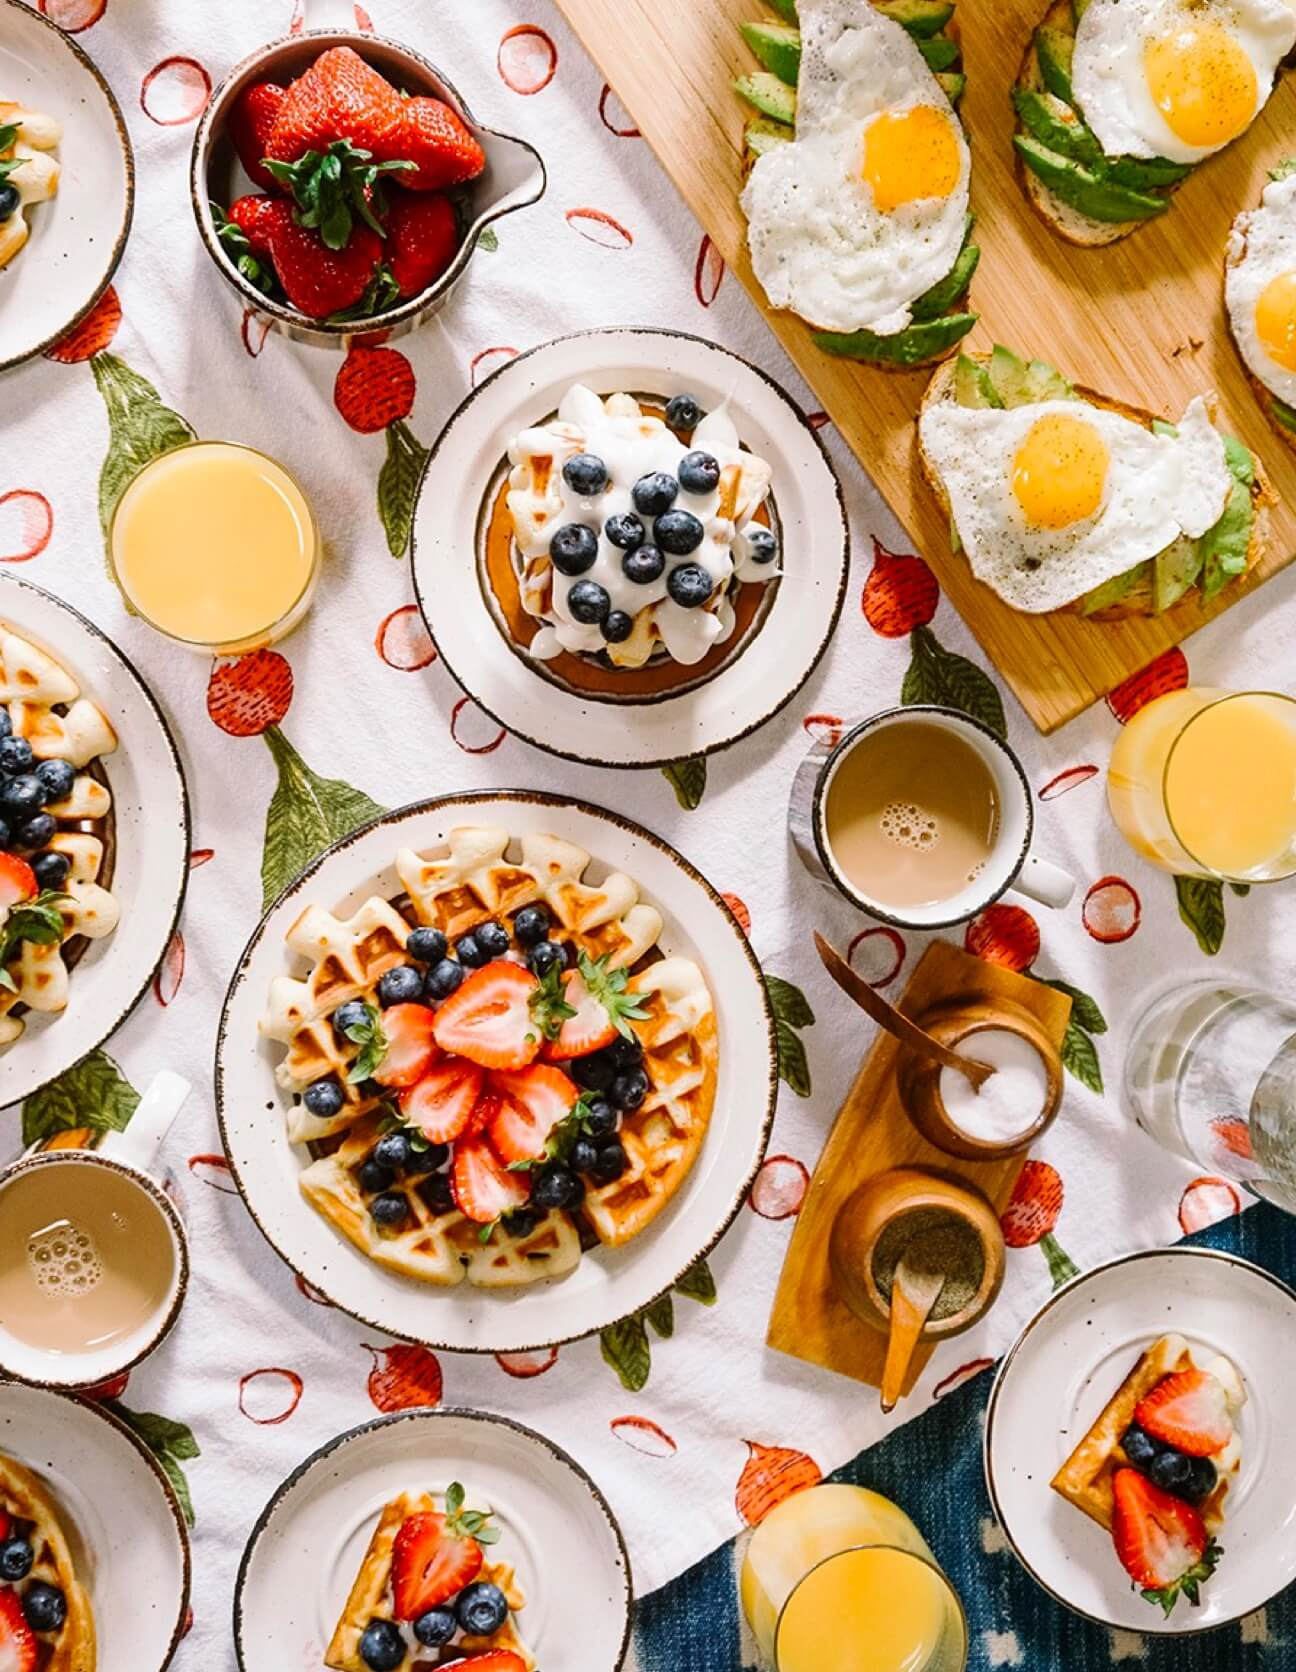 A table of delicious looking breakfast food